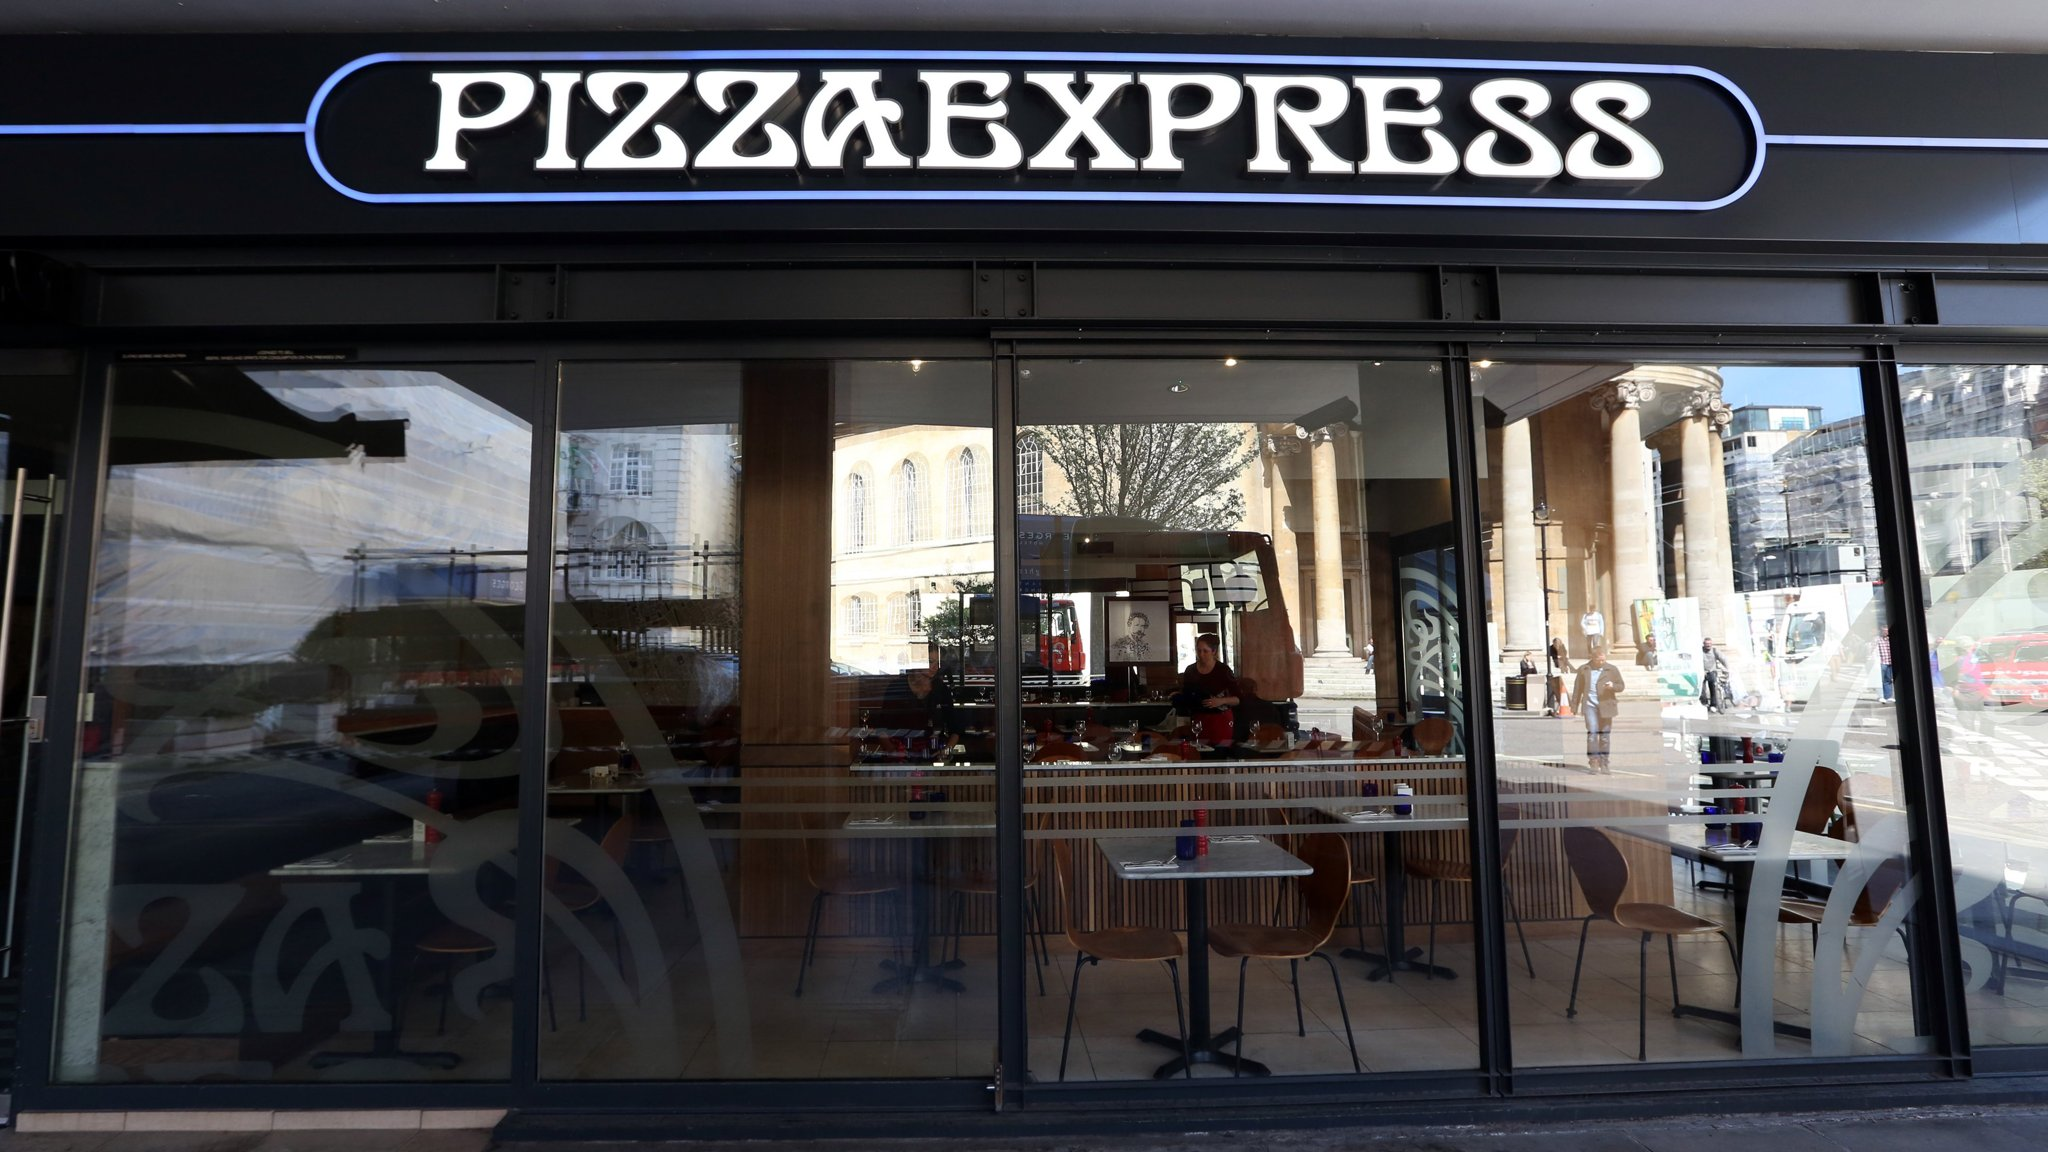 Pizzaexpress Scraps Own Delivery To Team Up With Deliveroo